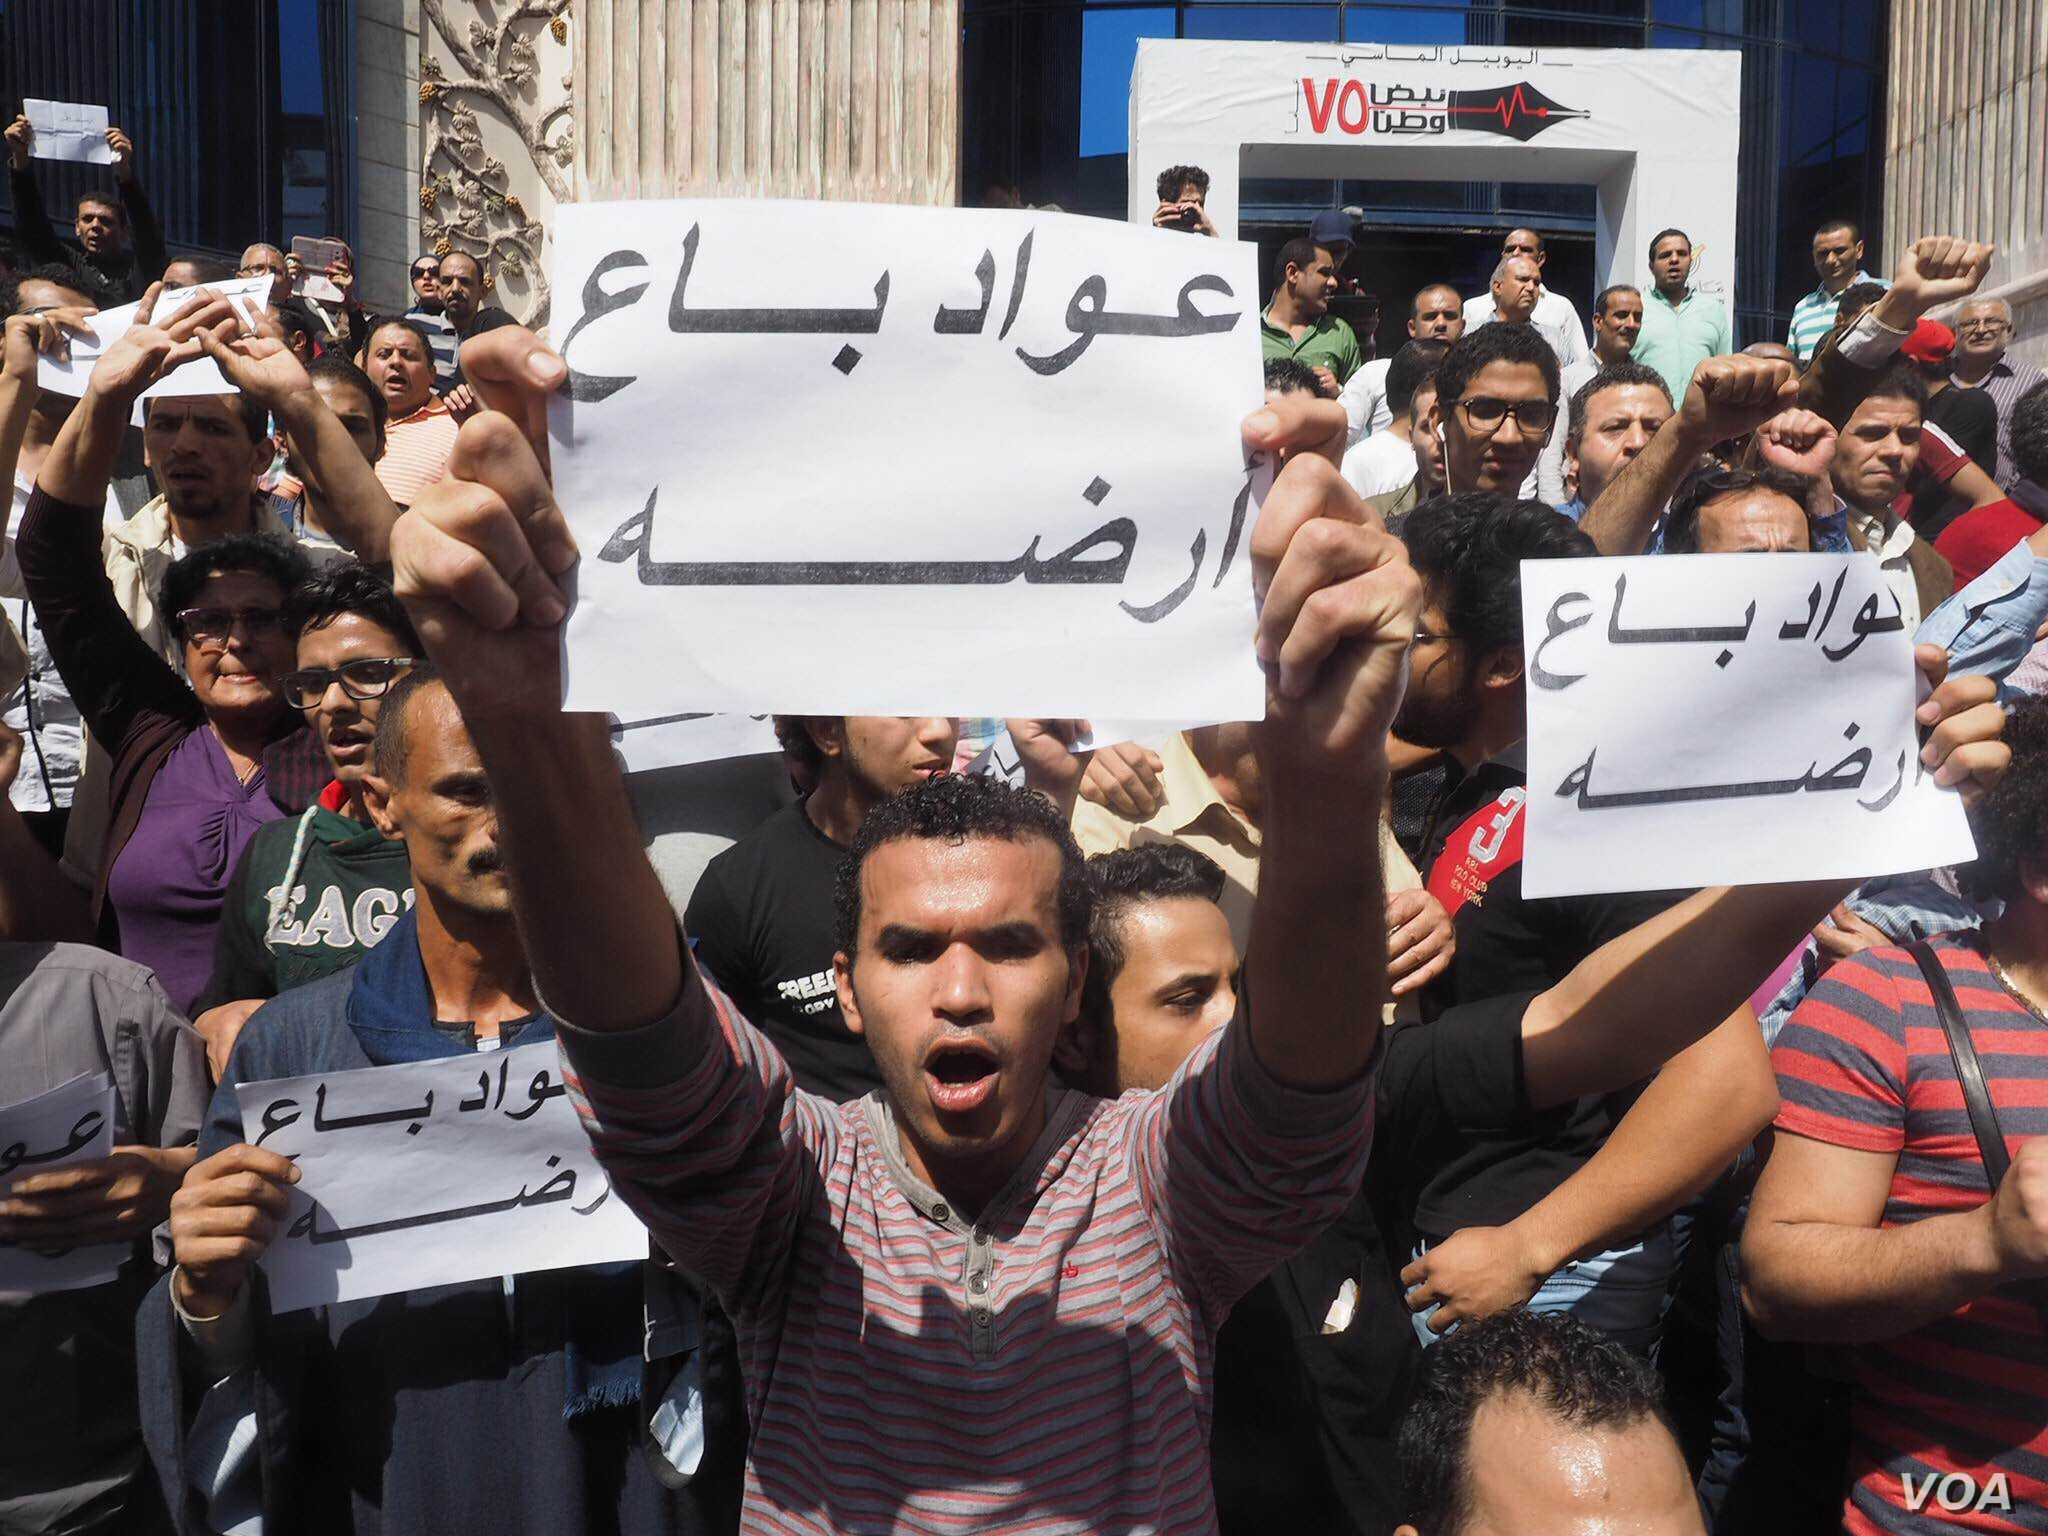 """Egyptian protesters hold a sign that says """"Awad sold his land"""" in Arabic during protest against the transfer of power of two Red Sea islands from Egypt to Saudi Arabia in downtown Cairo, April 15, 2016. The Egyptian proverb refers to shame some local..."""